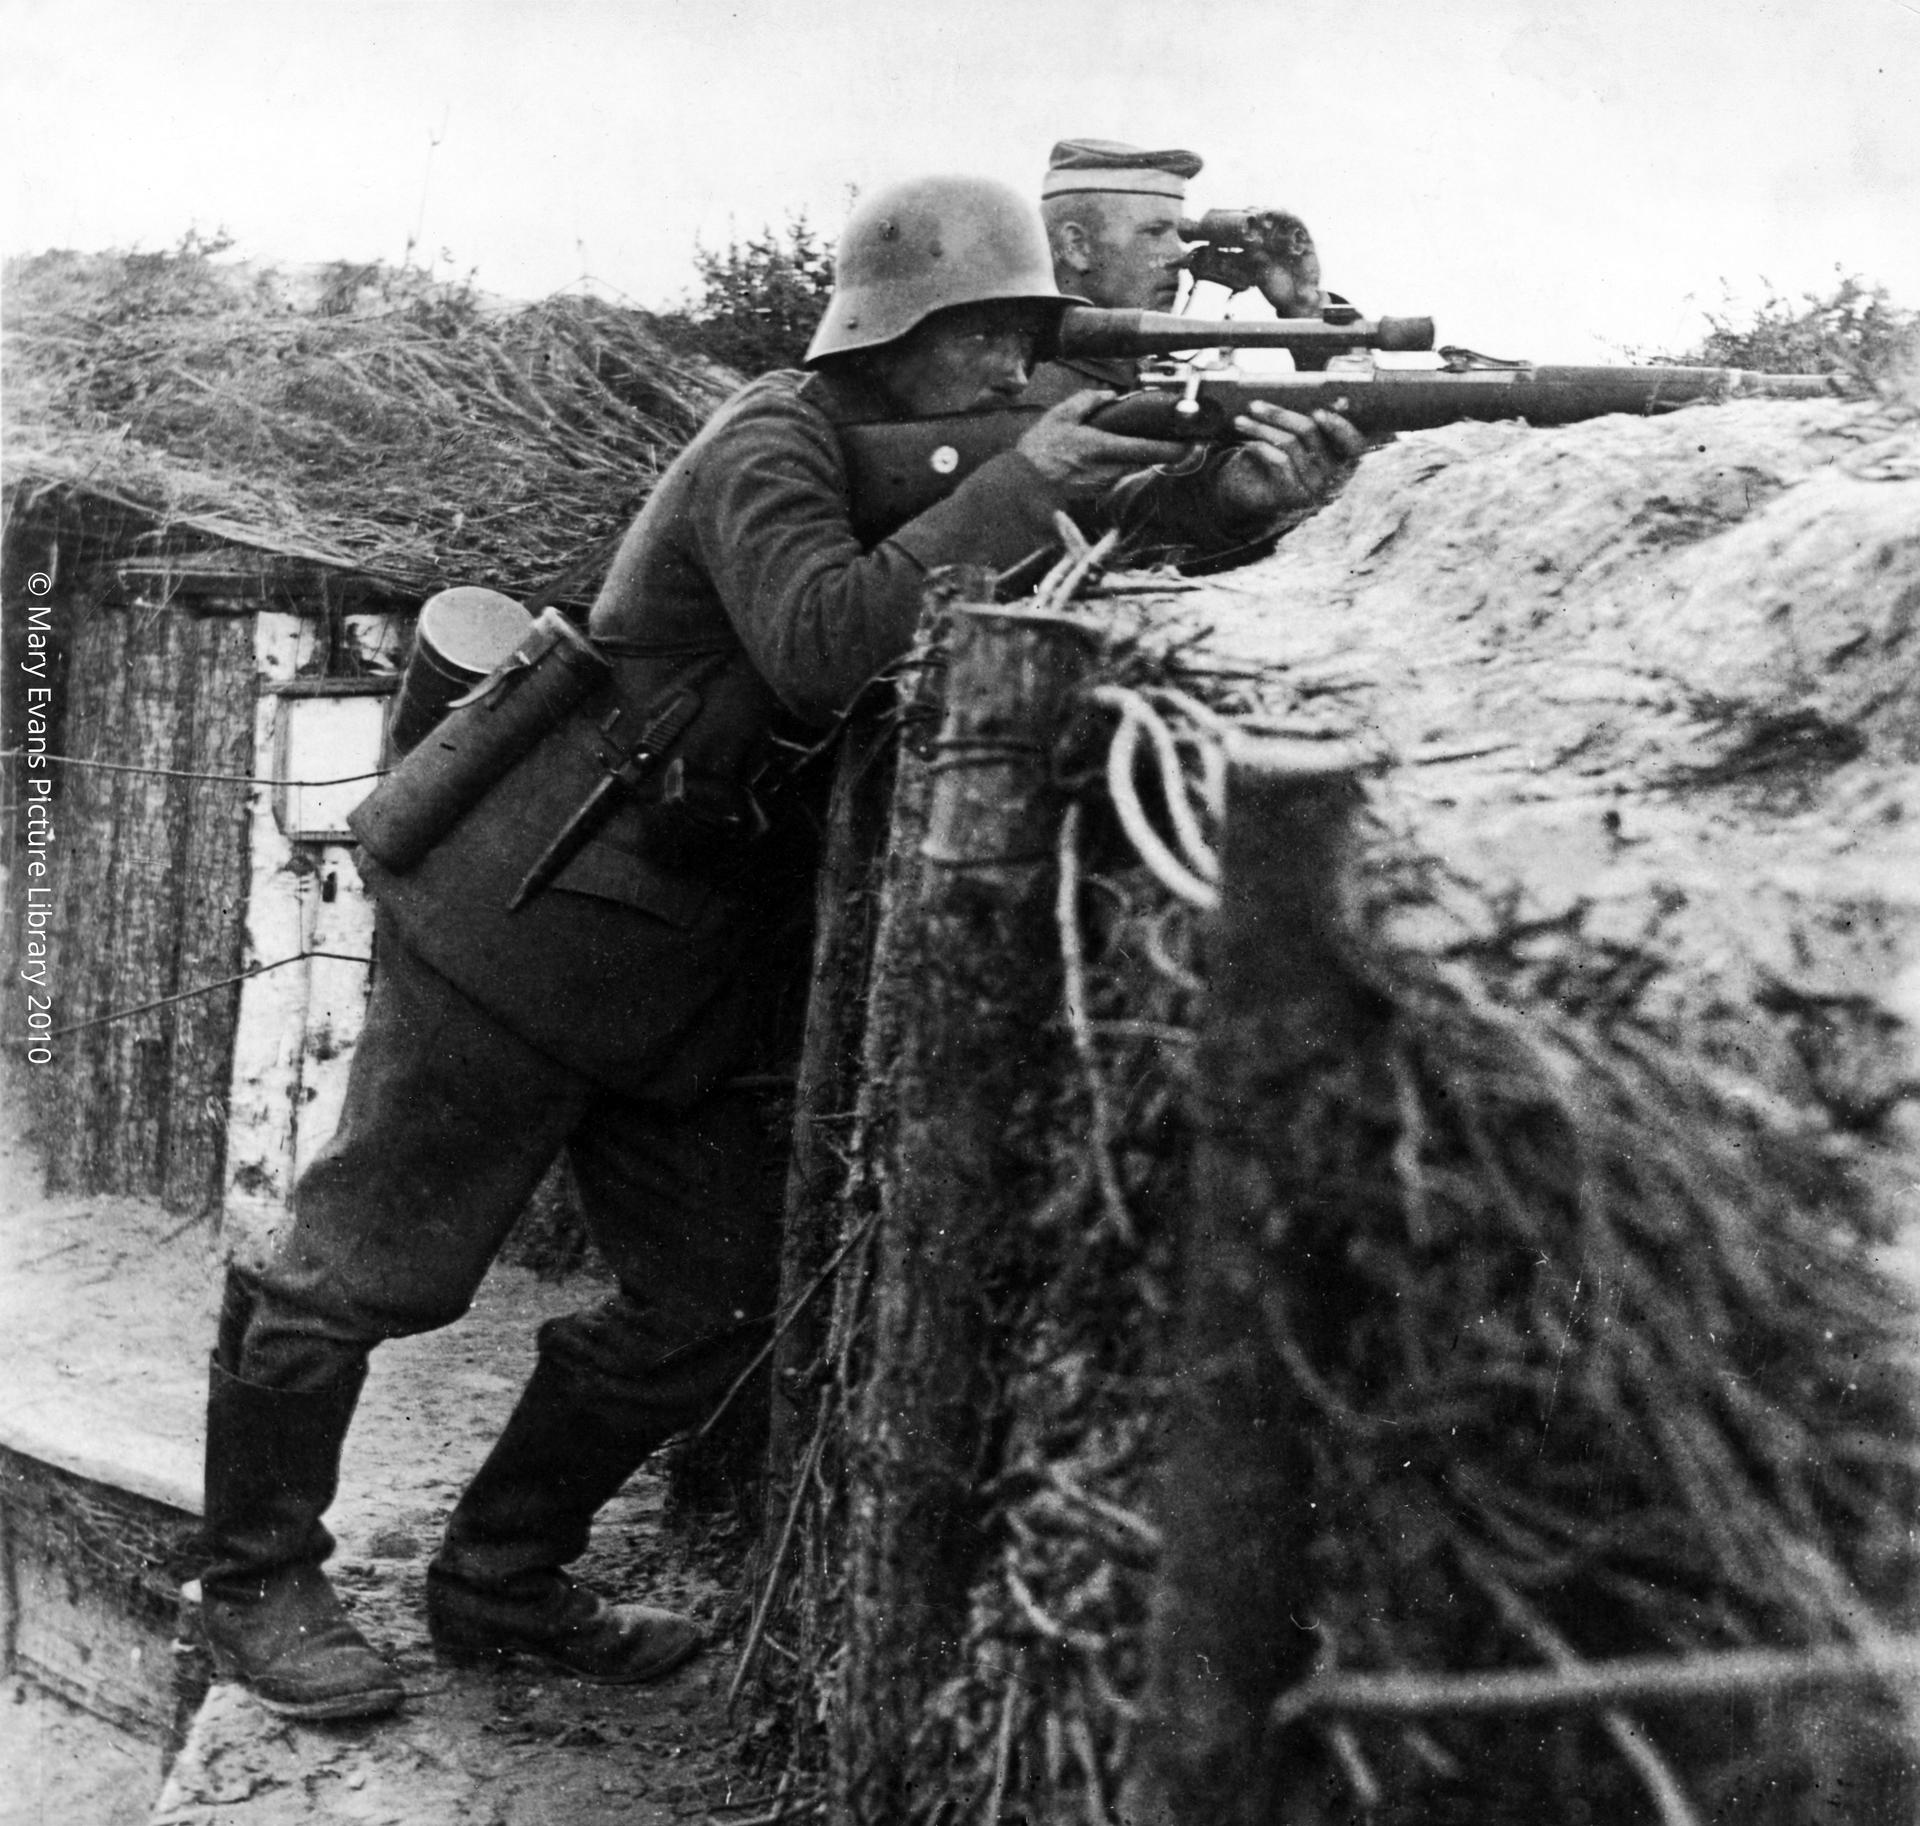 German sniper in a trench on the Western Front during World War I Date: 1917